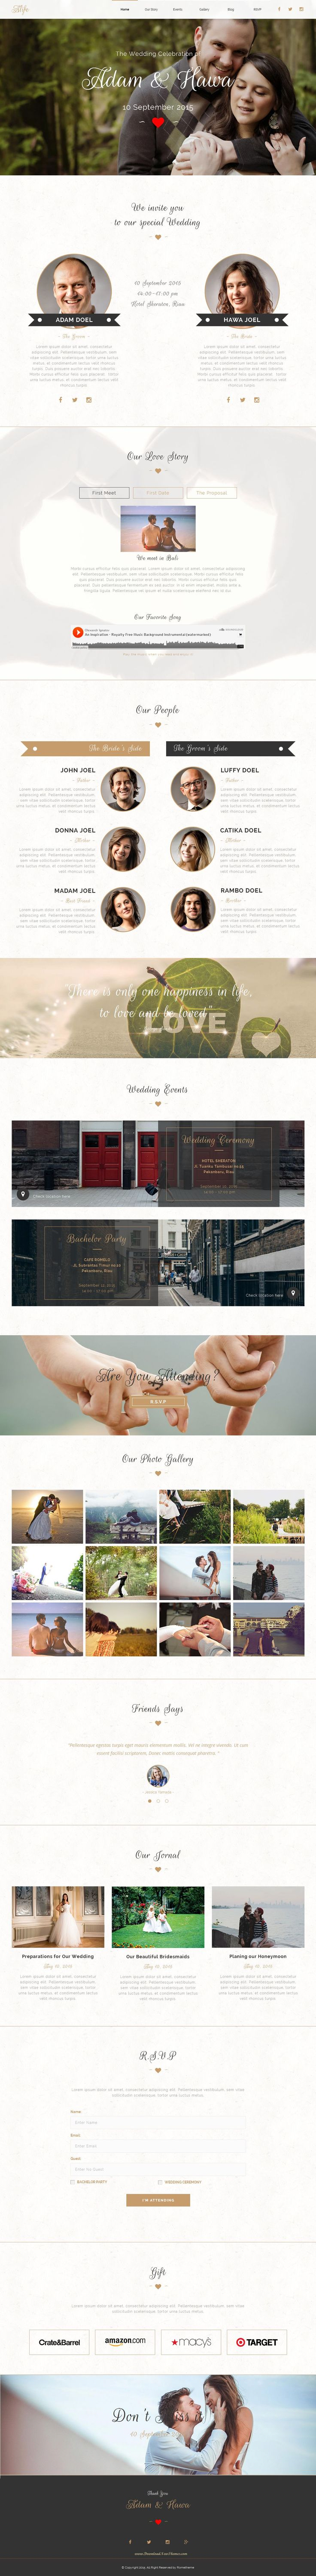 96 best Adobe Muse templates images on Pinterest | Template, Adobe ...